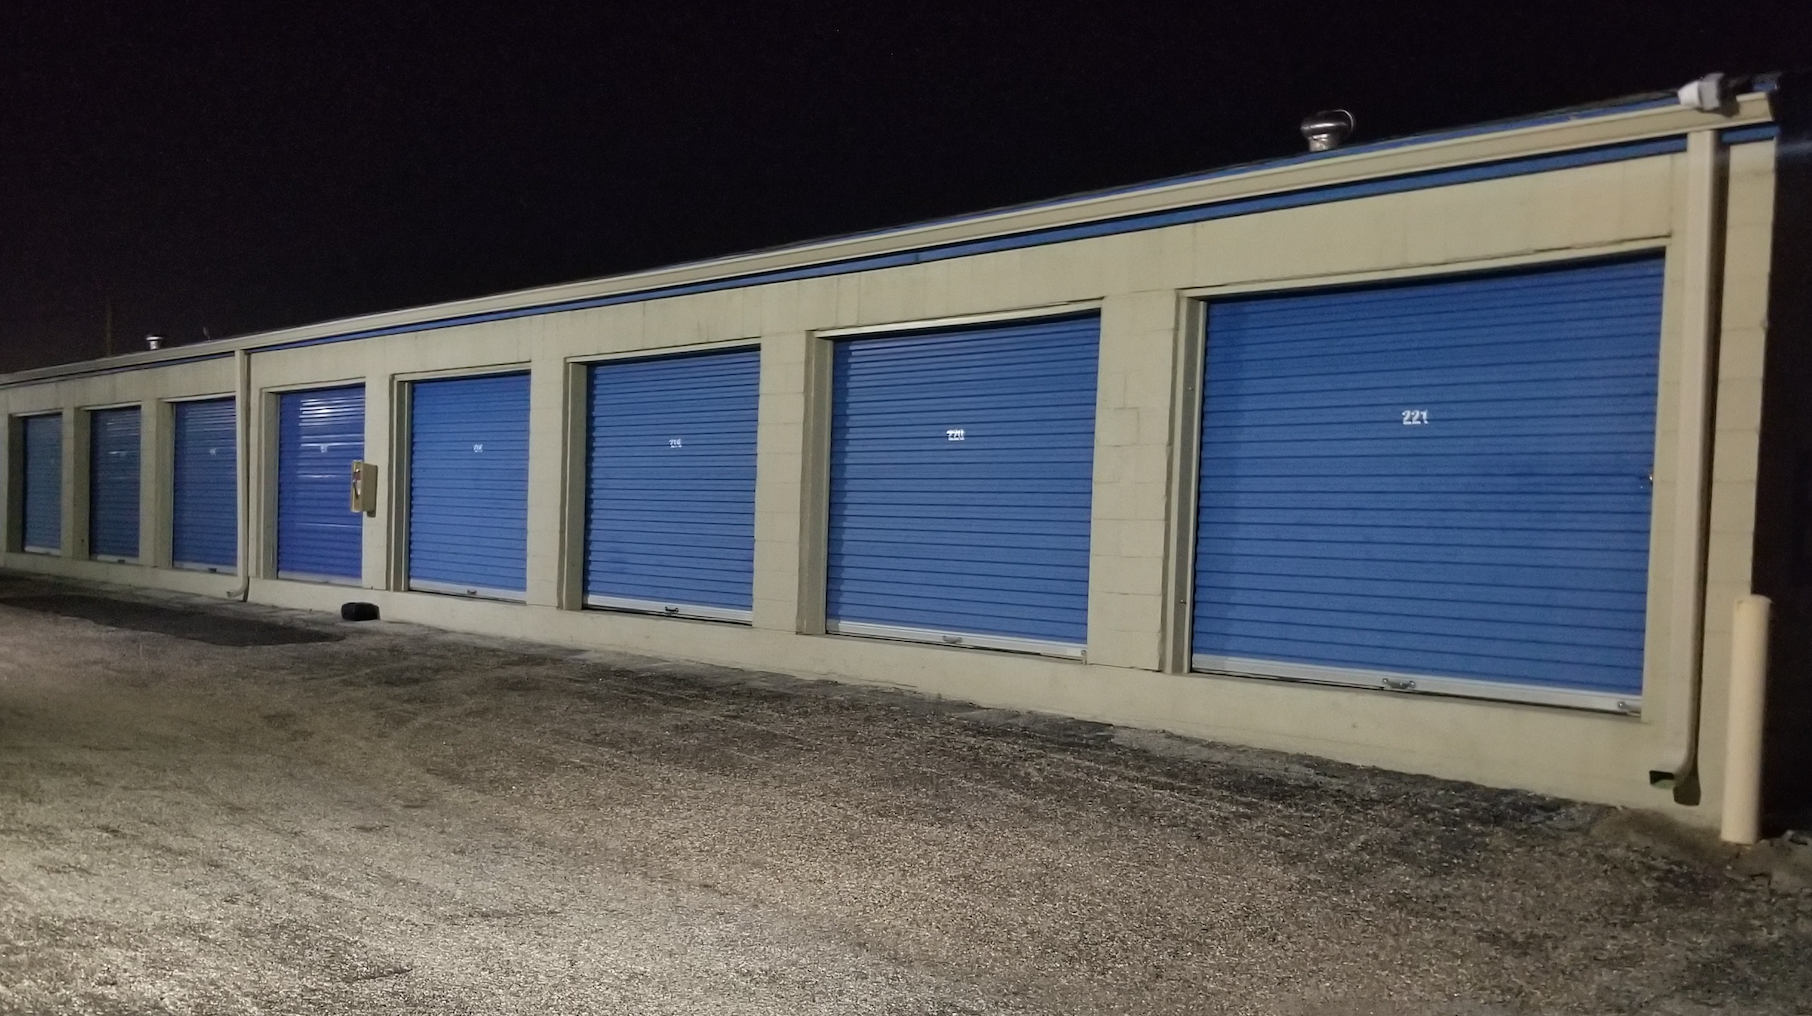 Galveston Self Storage Well Lit at Night